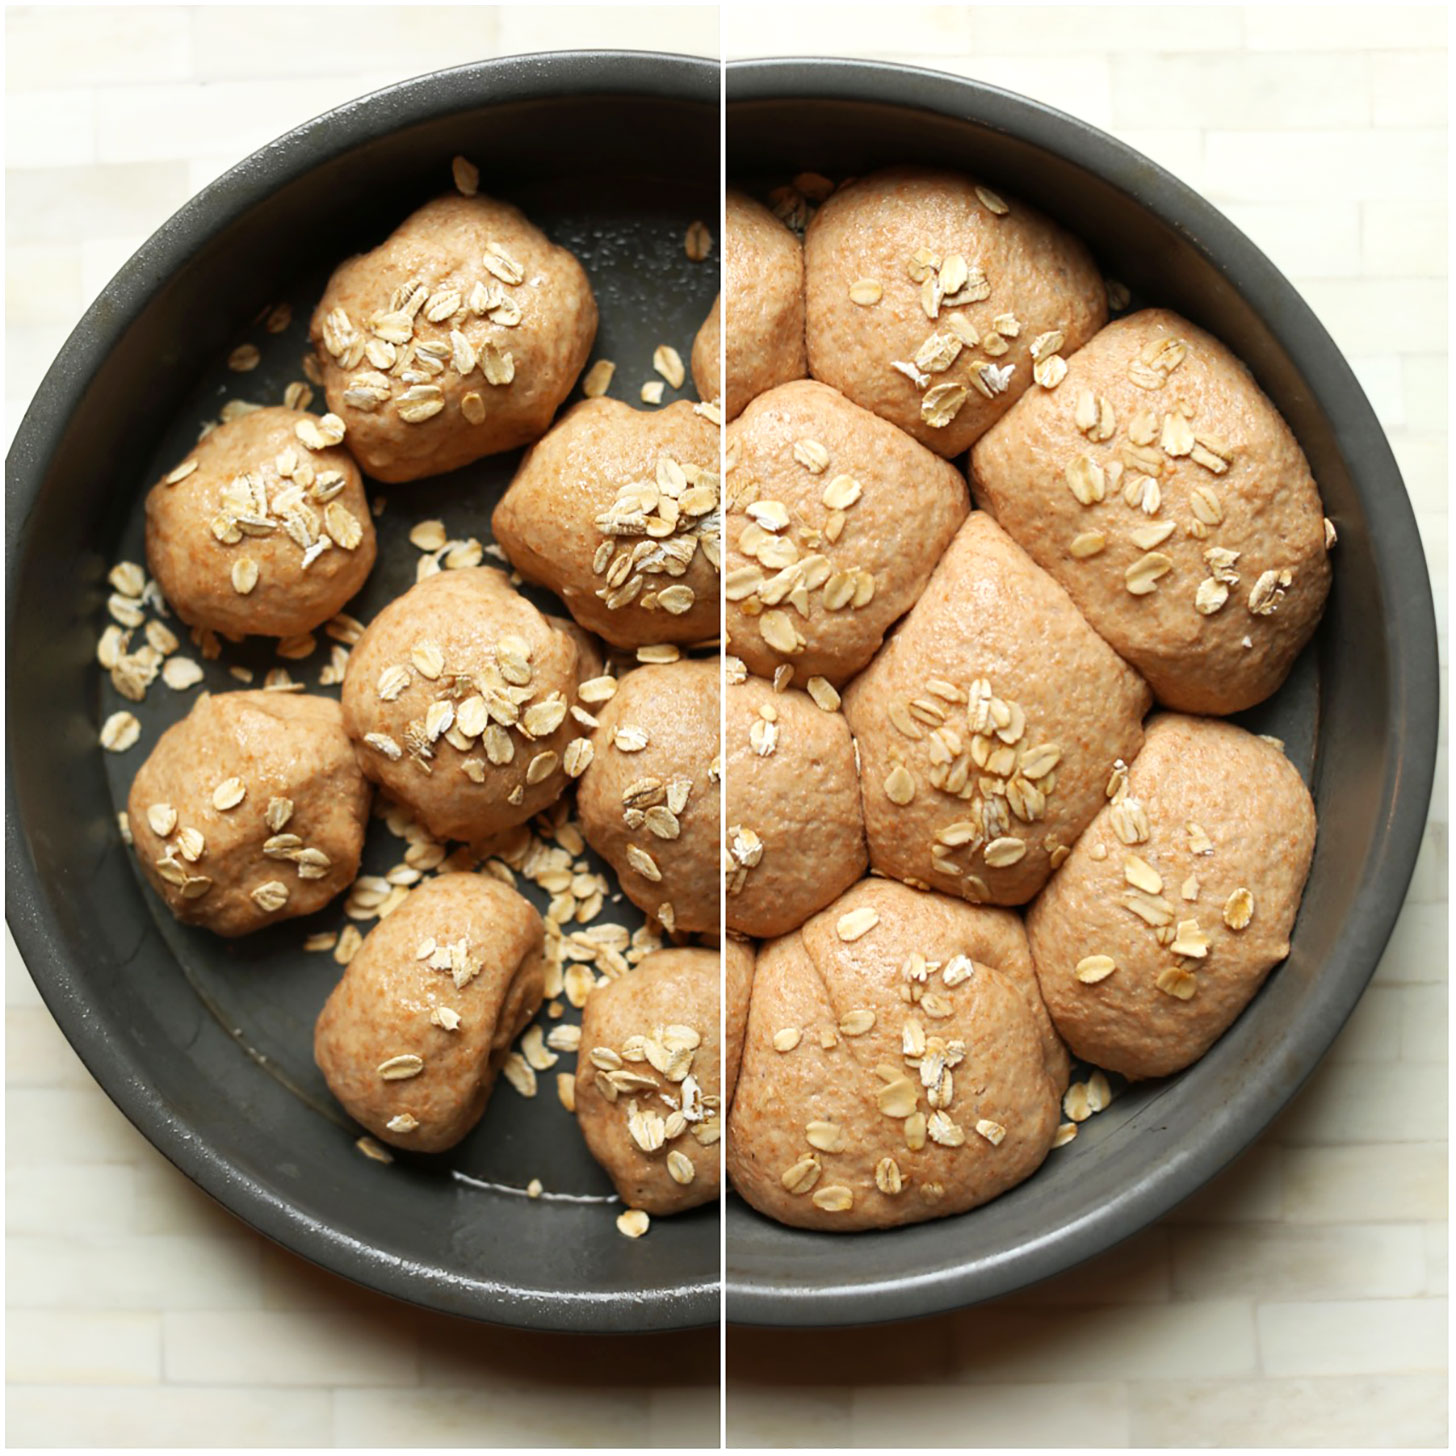 Photo contrasting vegan thanksgiving rolls before and after proofing